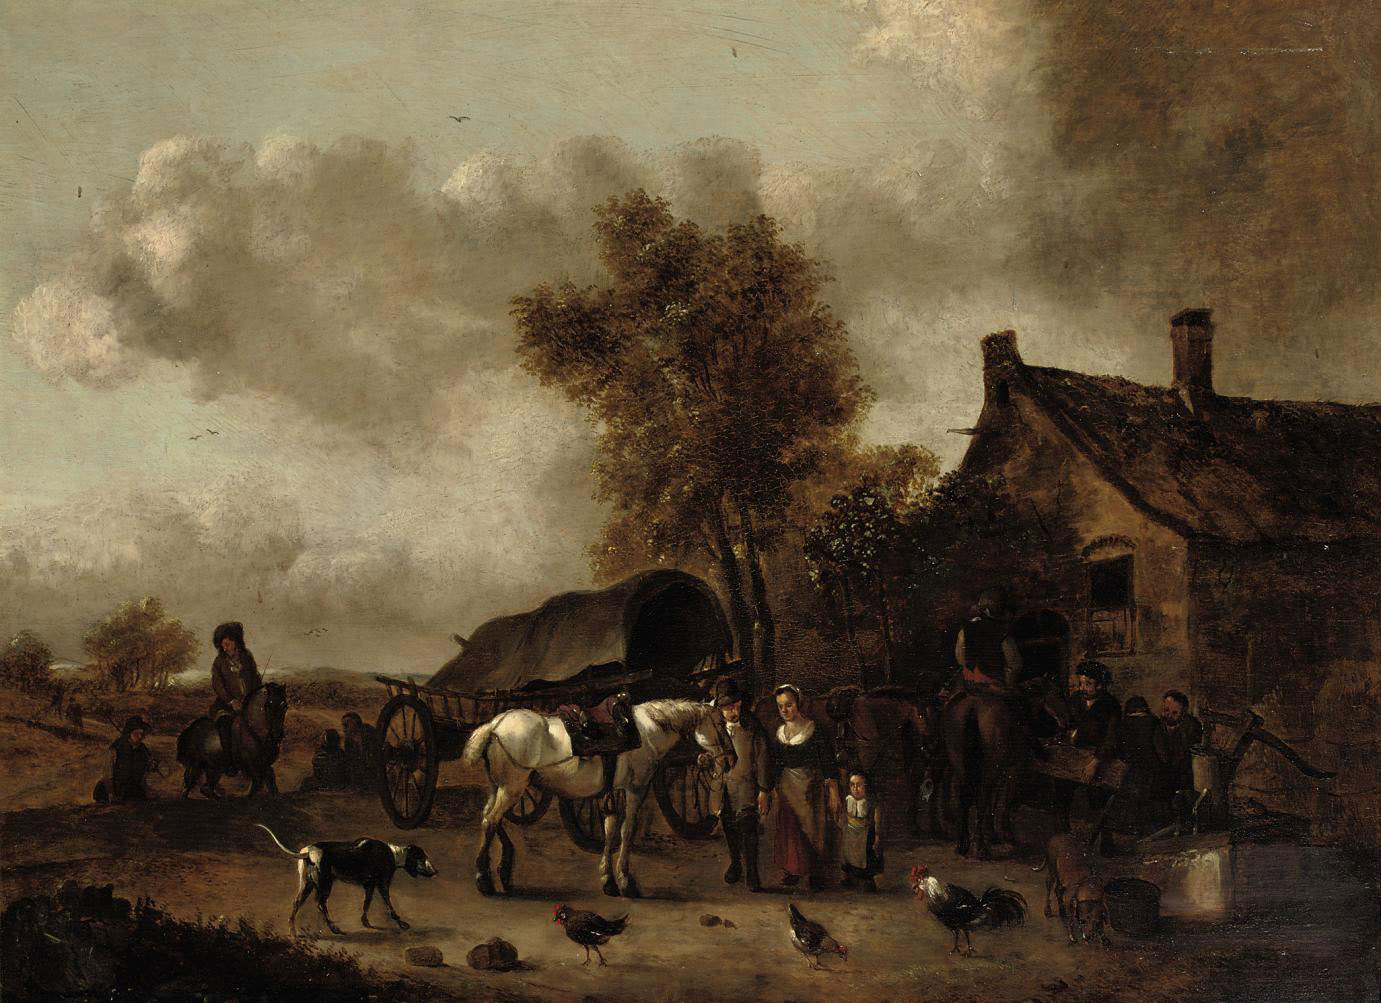 A landscape with horses and riders near a tavern